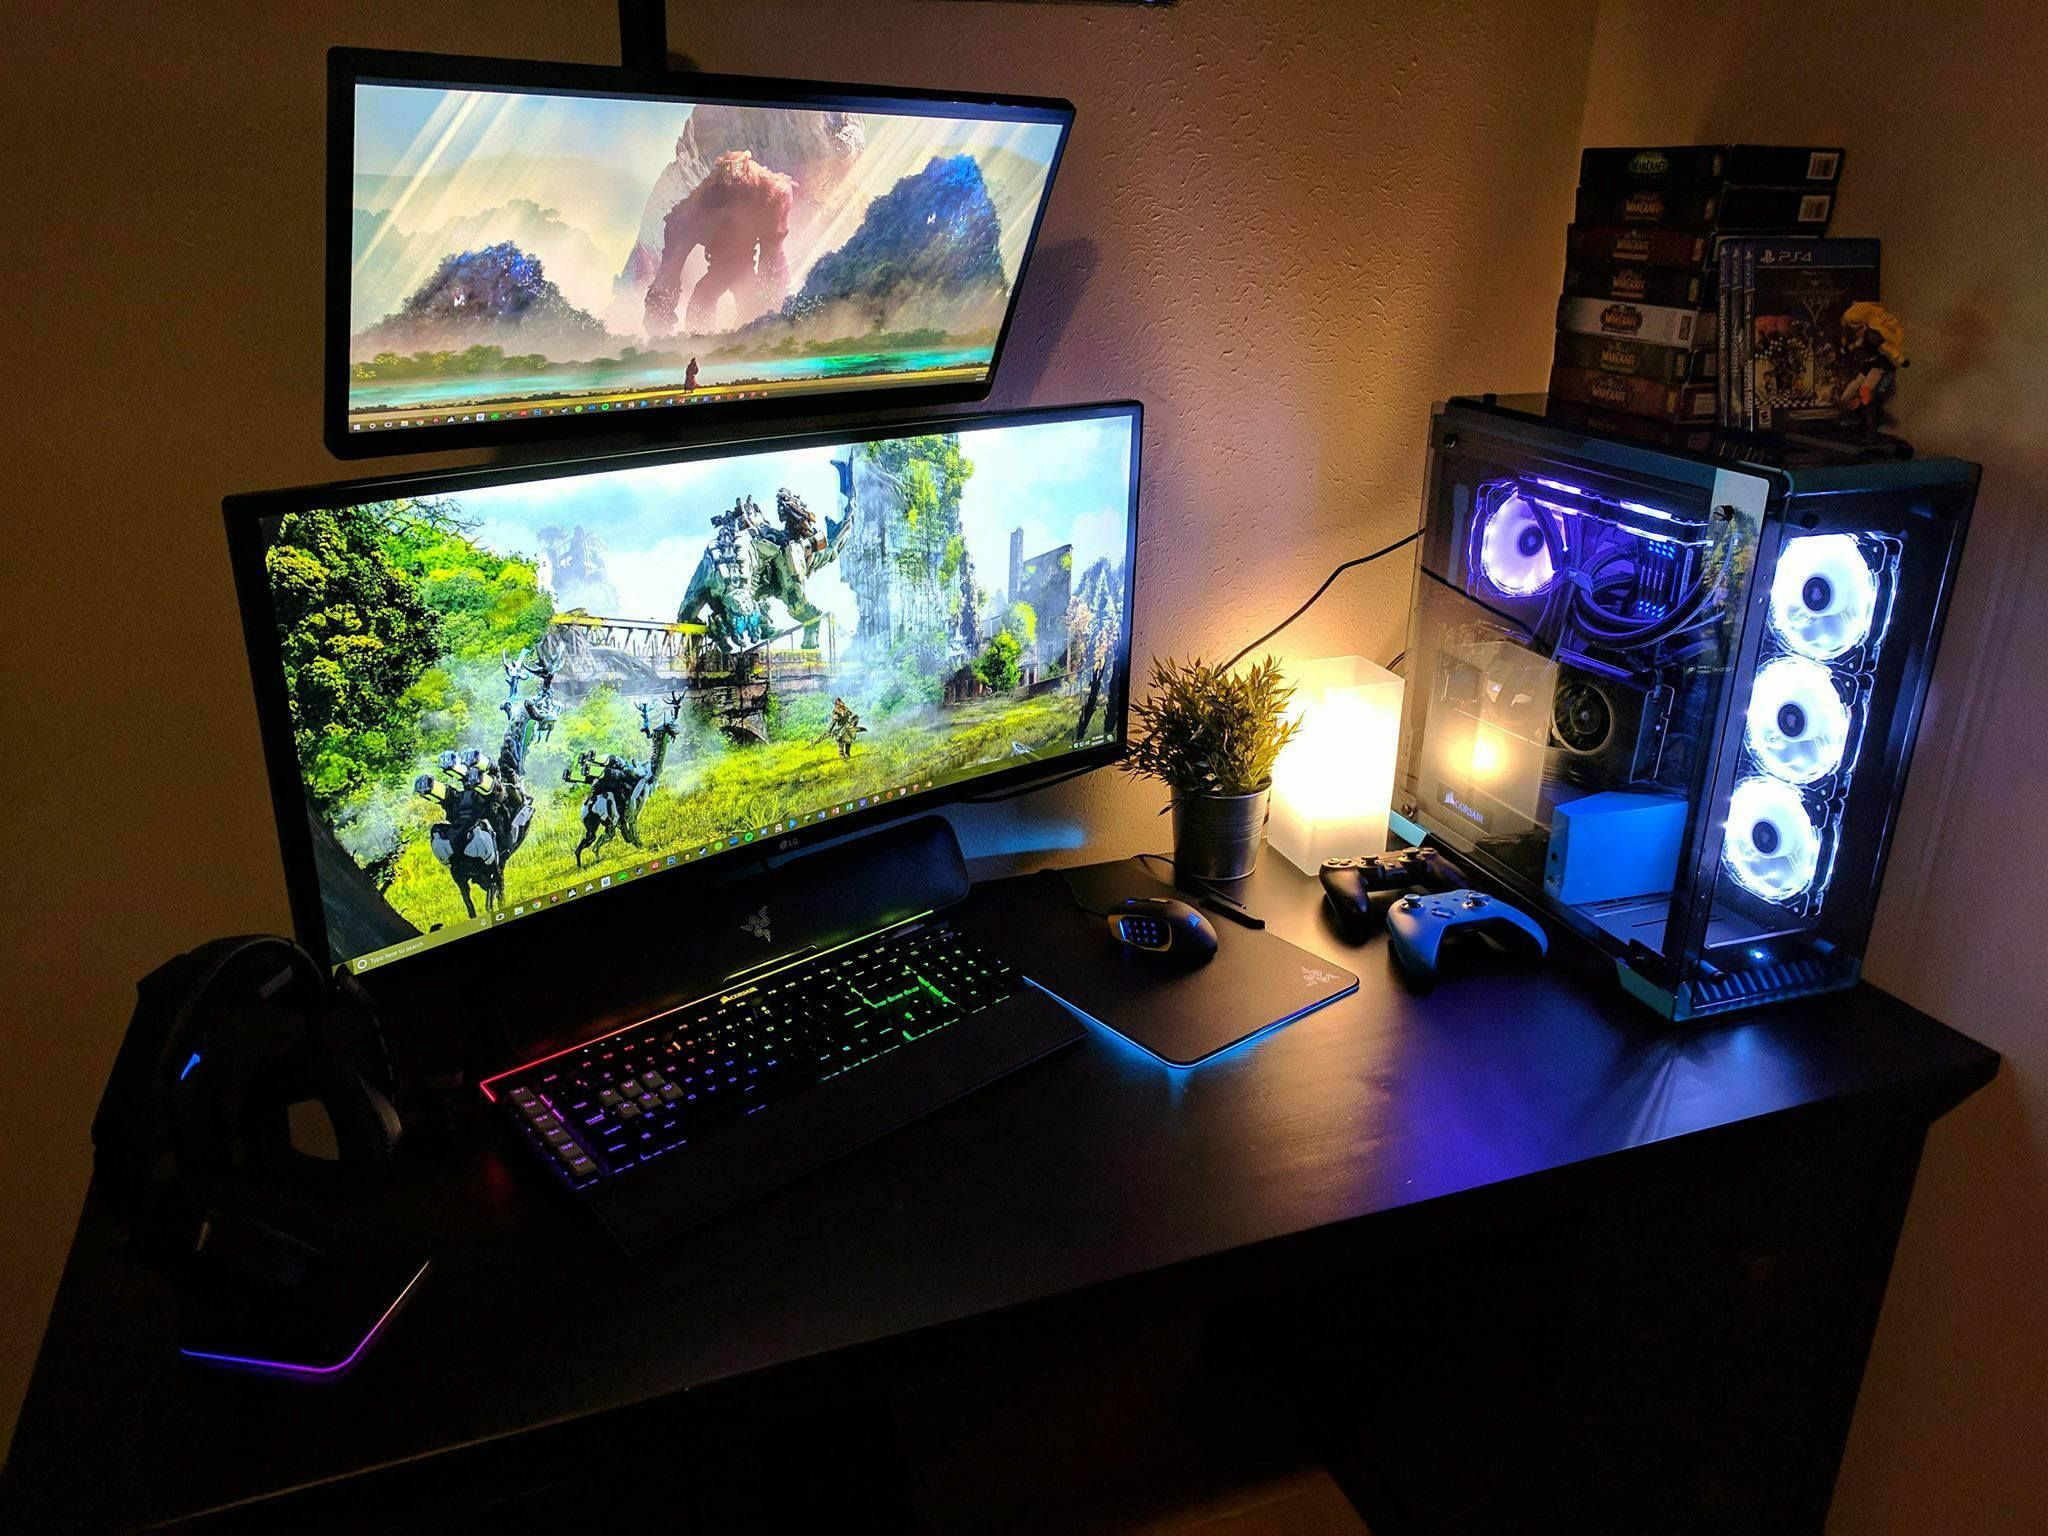 Battlestation is done No more upgrading or tinkering Destiny 2 on PC awaits